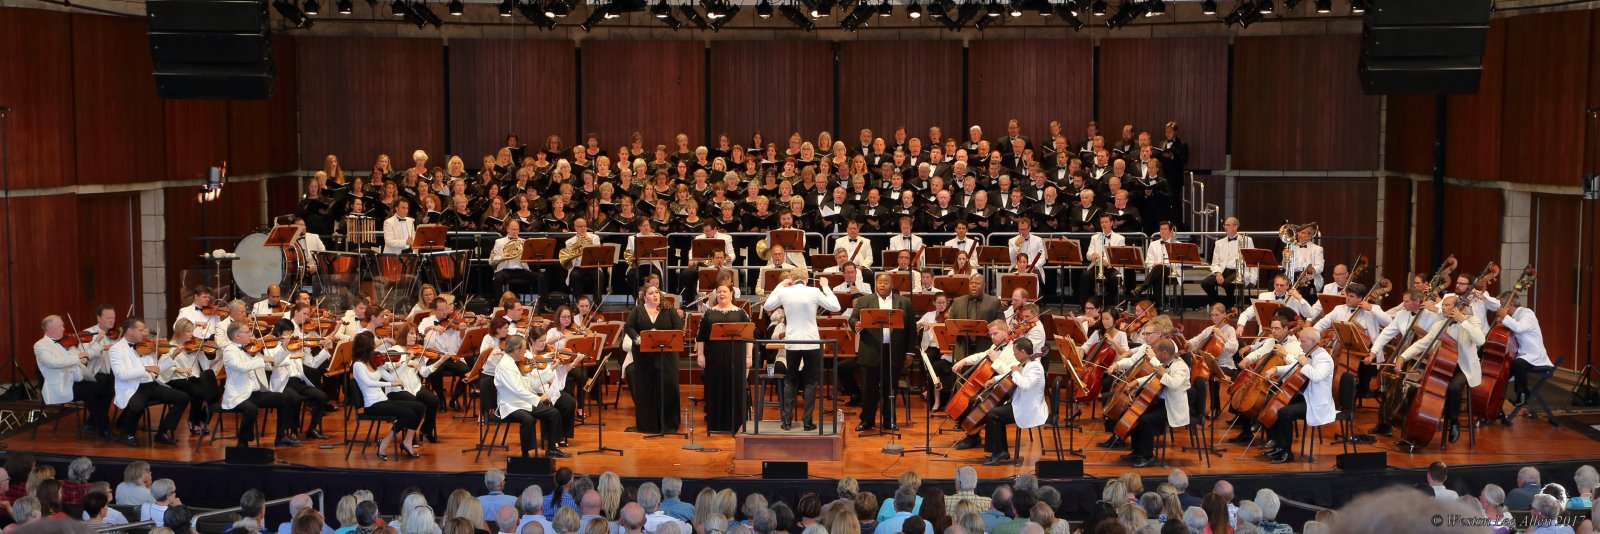 photo of chorus and orchestra